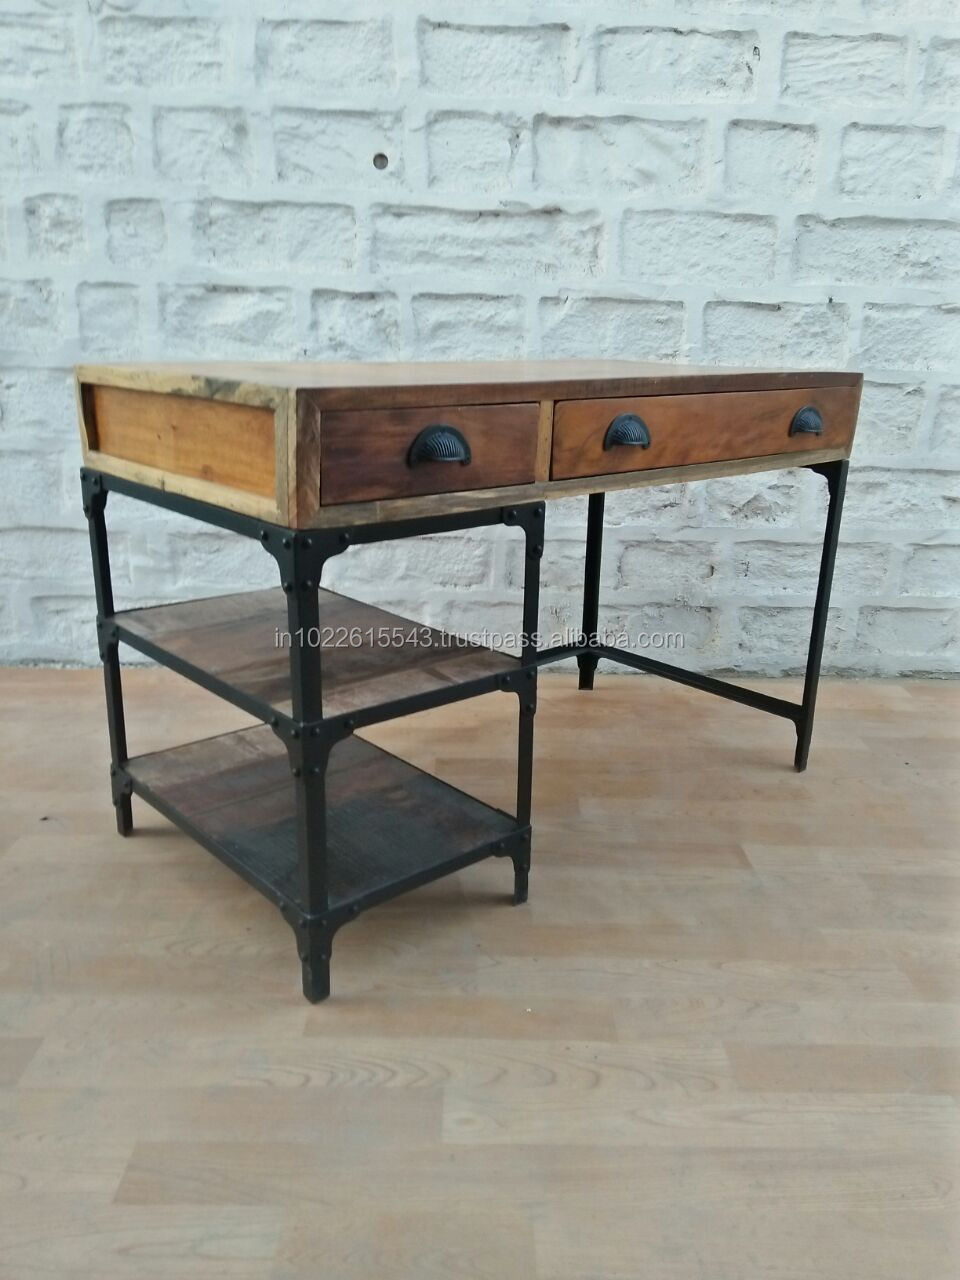 Image of: Industrial Mango Wood Study Desk With Drawers Modern Mango Wood Office Desk Buy Office Desk With Locking Drawers Solid Wood Study Desk Classic Wood Office Desk Product On Alibaba Com